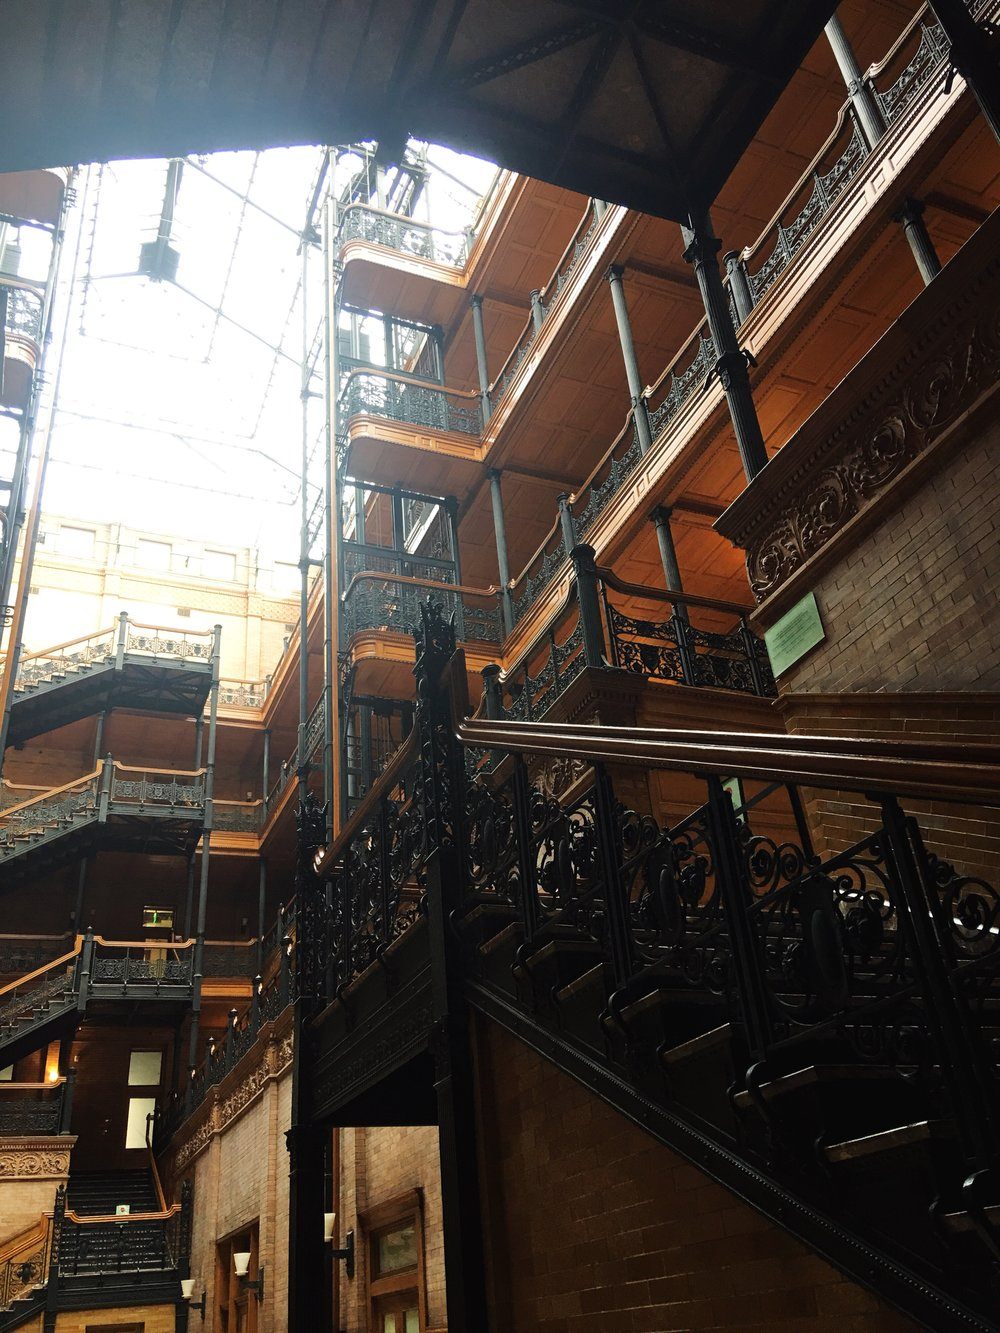 Iron Working Details at the architecturally famous Bradbury Building in Downtown Los Angeles